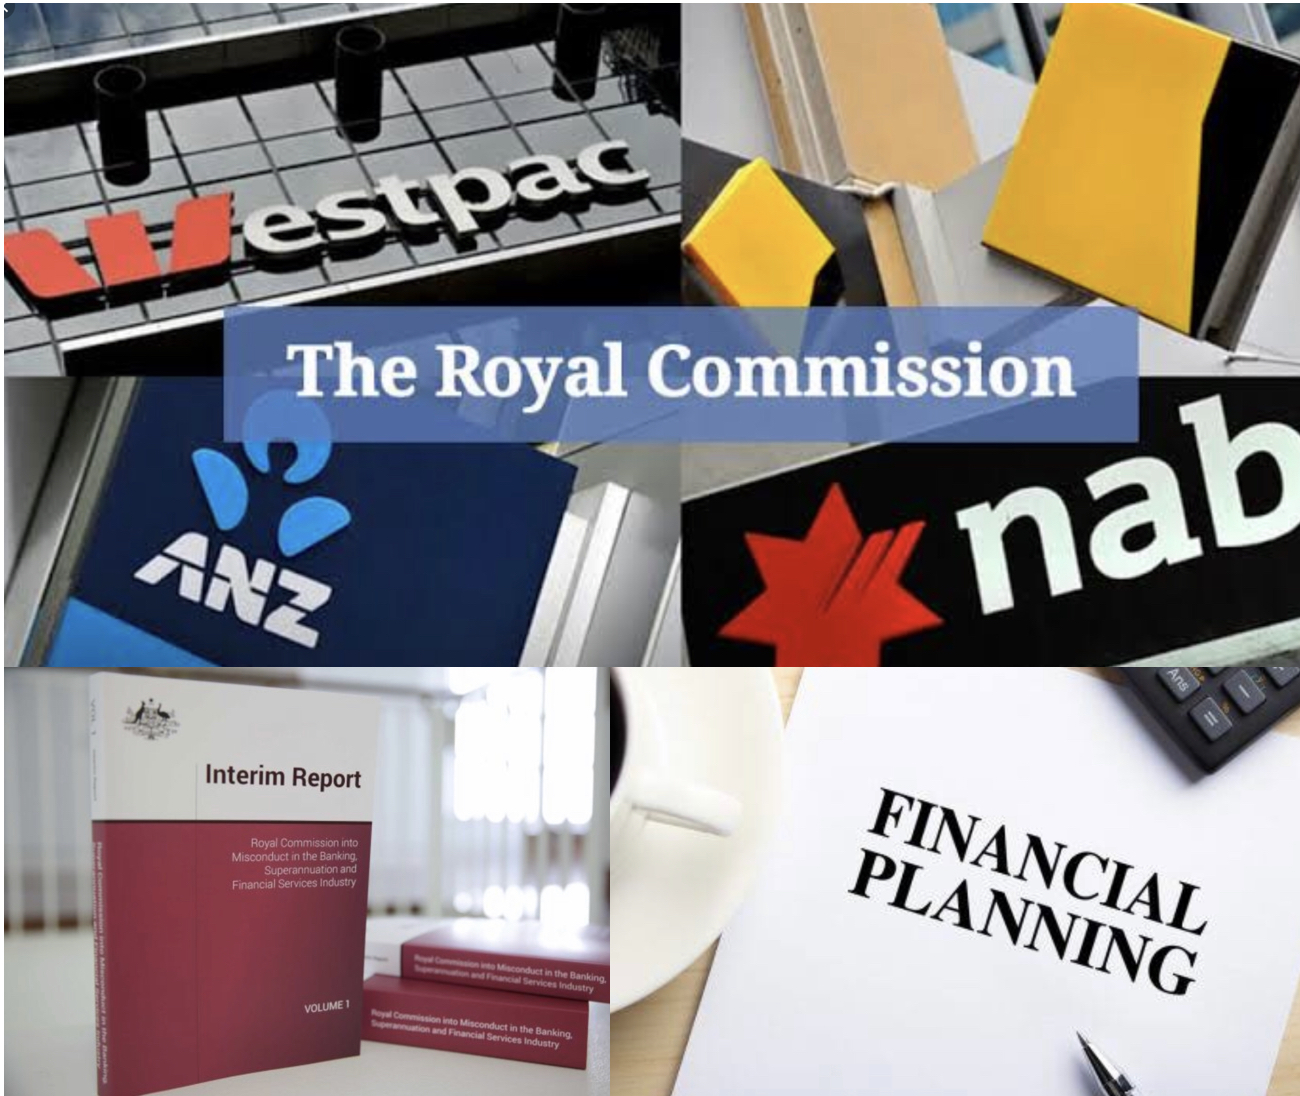 Royal Commission into Financial Planning